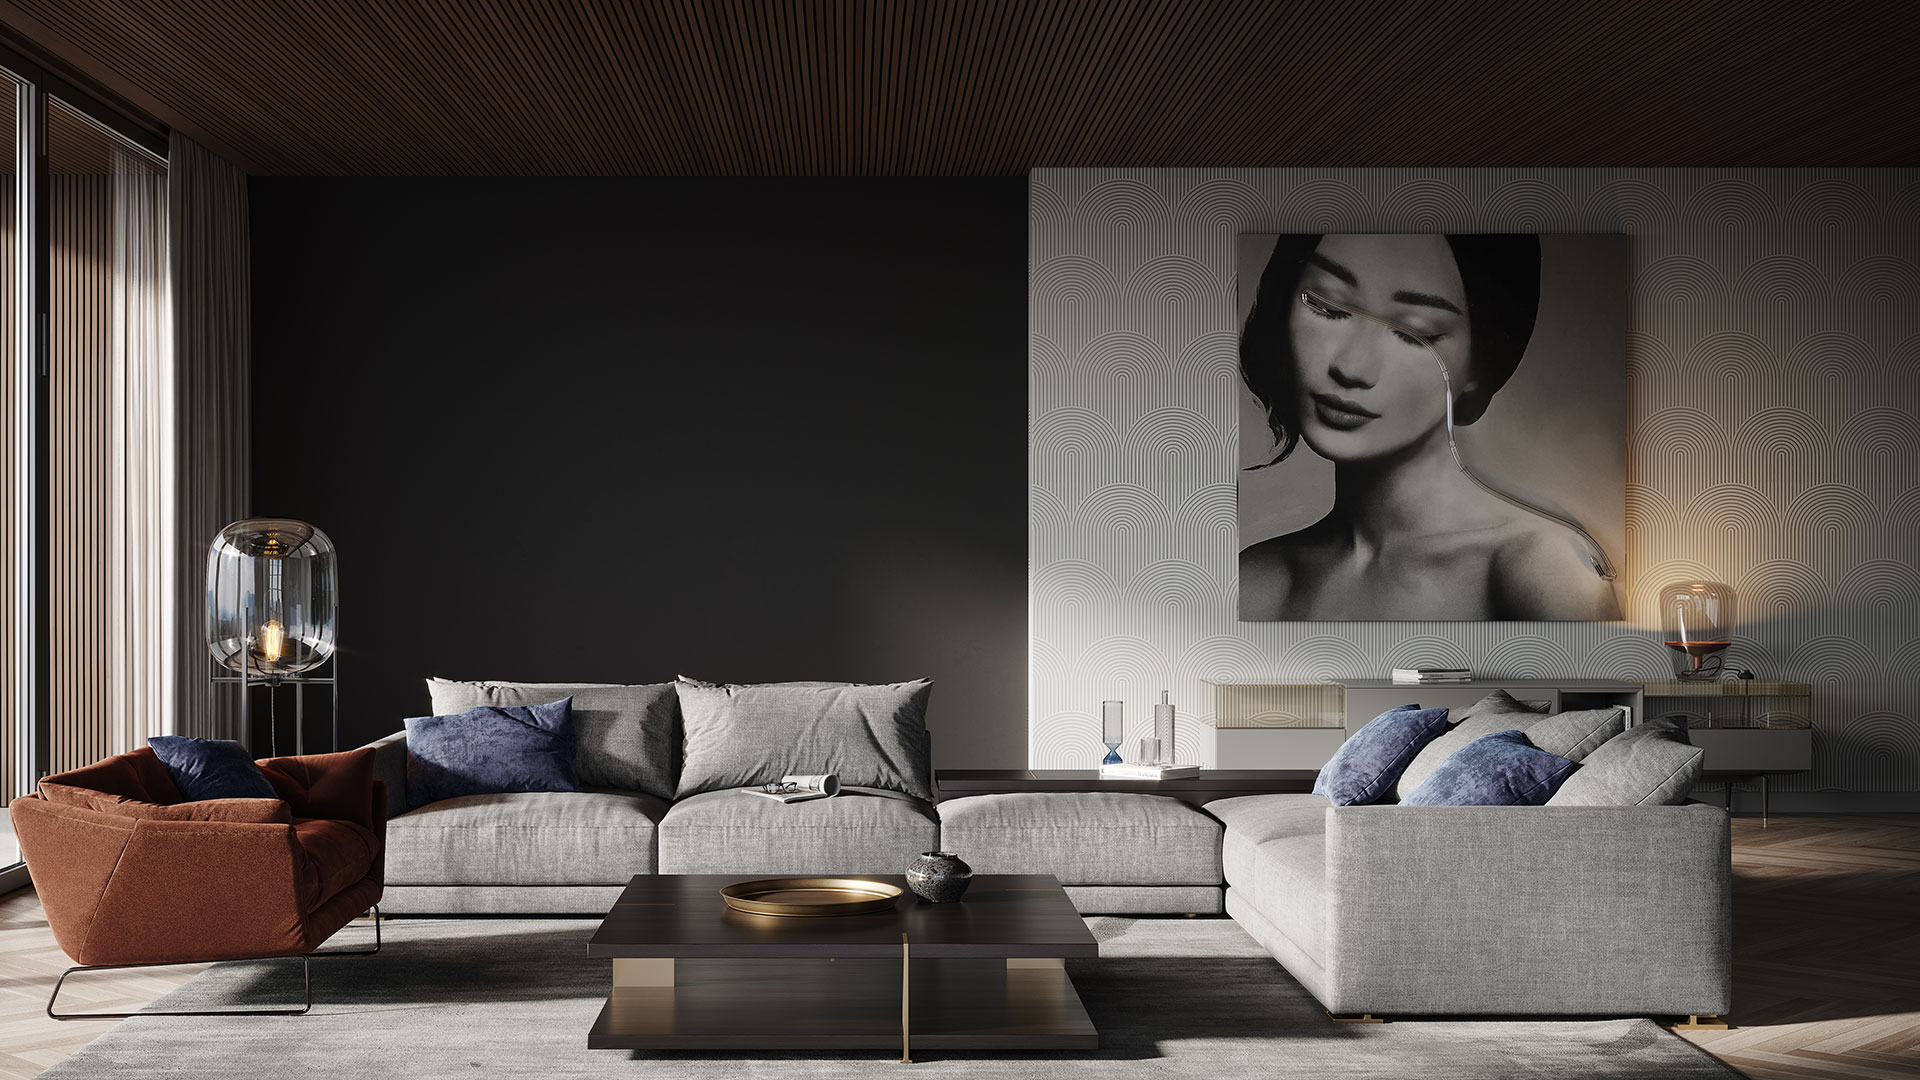 Rendering of a Modern Living Room Made with Corona 6 and 3ds Max